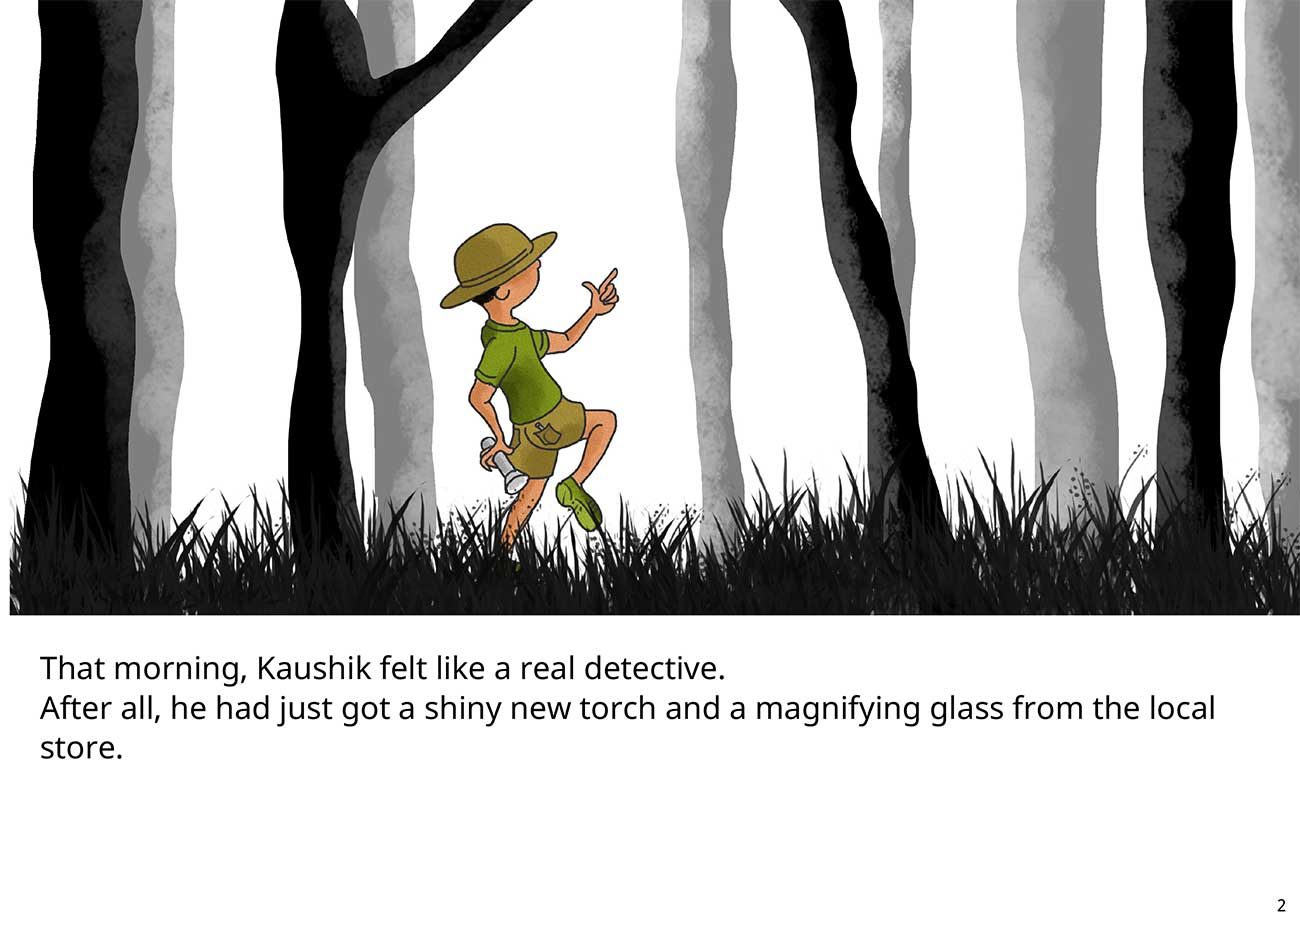 Kaushik the kind detective free kids short story page 2